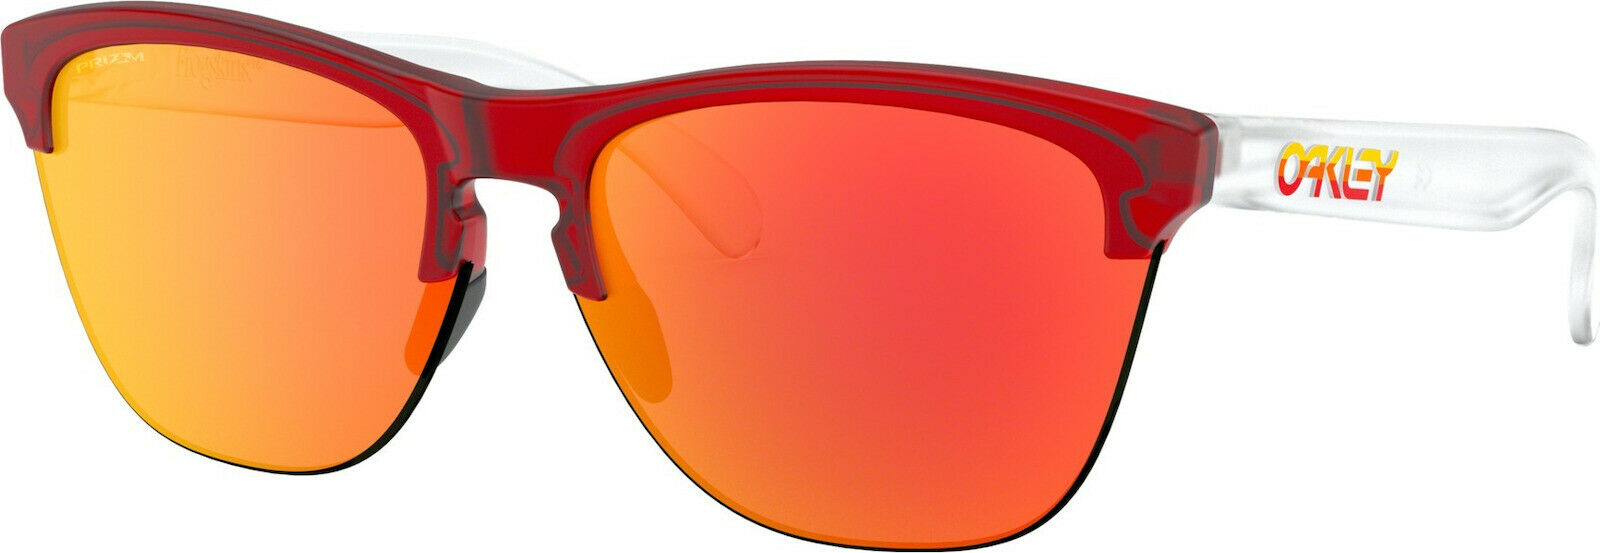 Oakley Frogskins Translucent Prizm Ruby Lens Sunglasses (OO9374-06) - Ships Next Day!